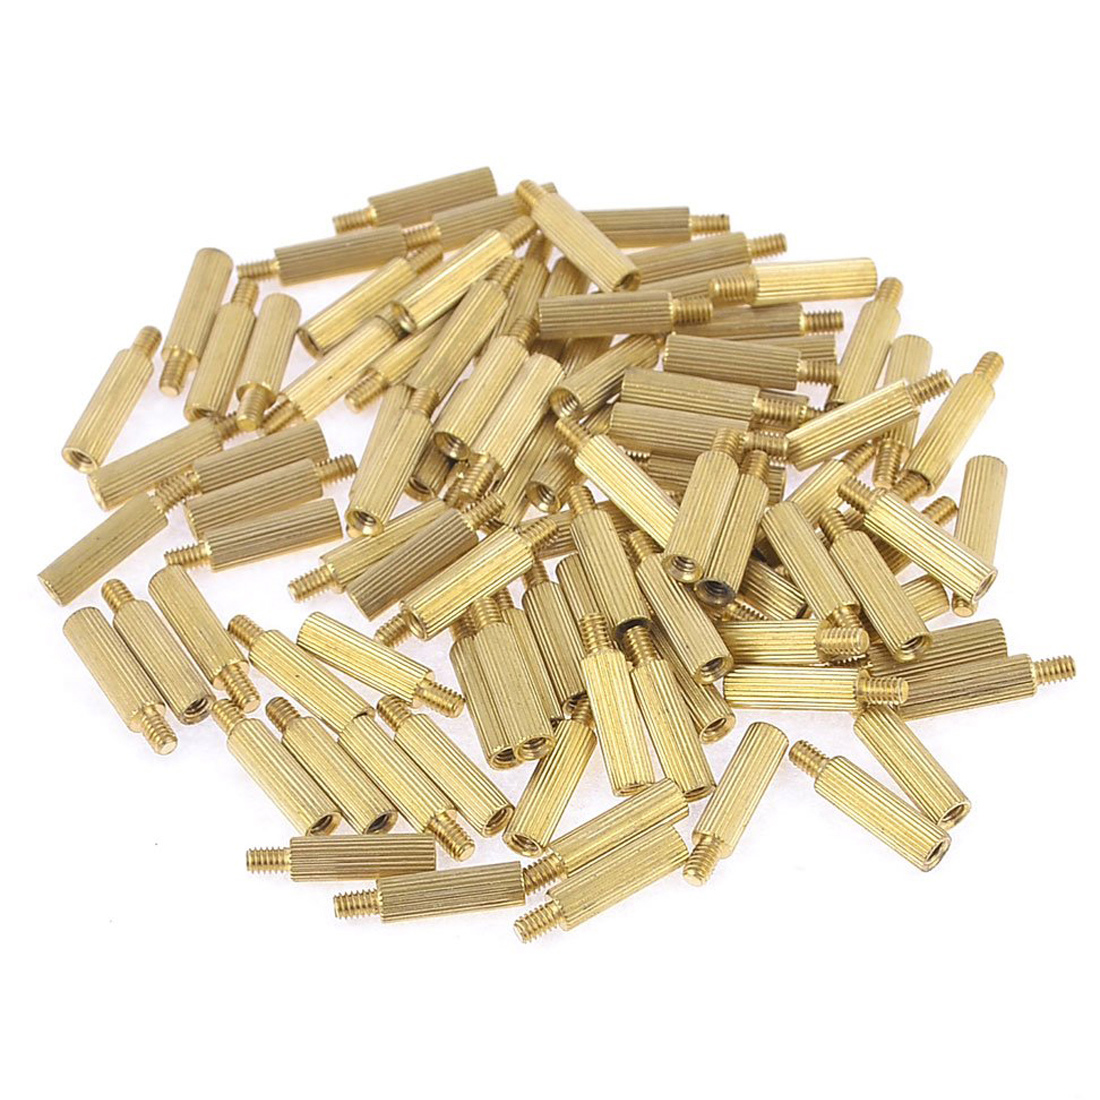 5X 100 Pcs Male Female PCB Thread Brass Pillars Standoff Spacers W2N9